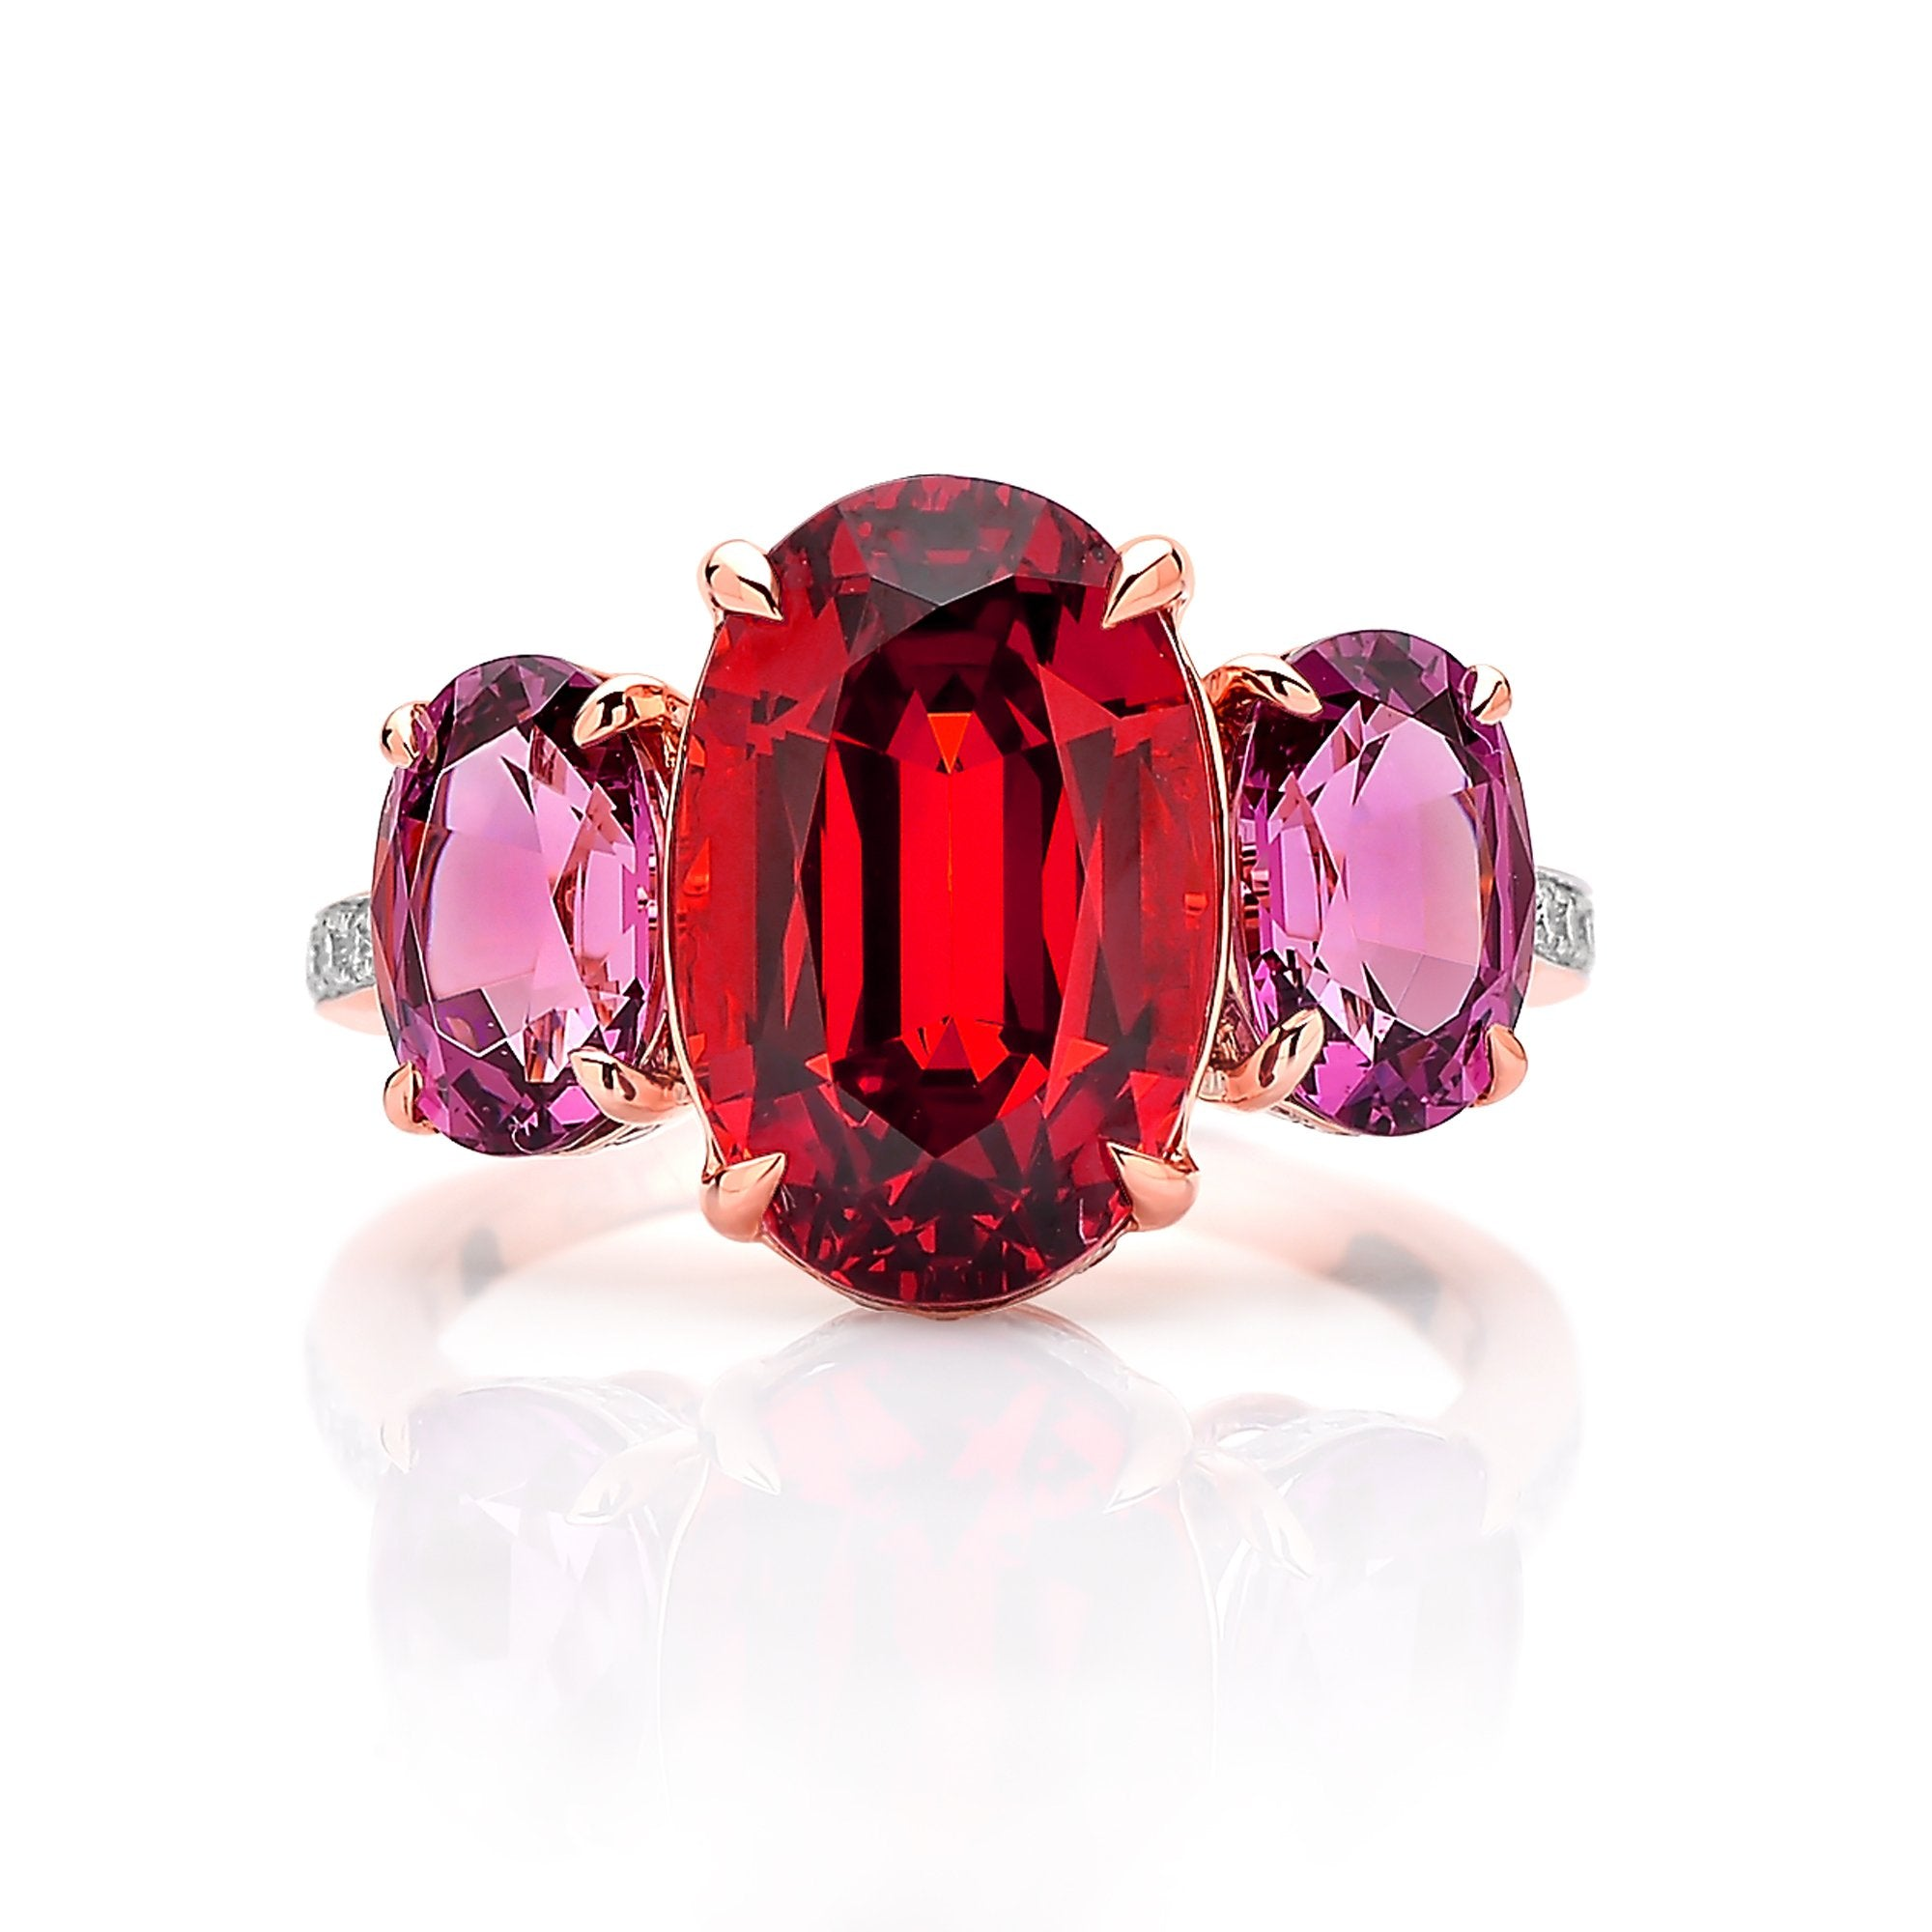 18kt Gold Mandarin and Rhodolite Garnet Ring with Diamonds - Paolo Costagli